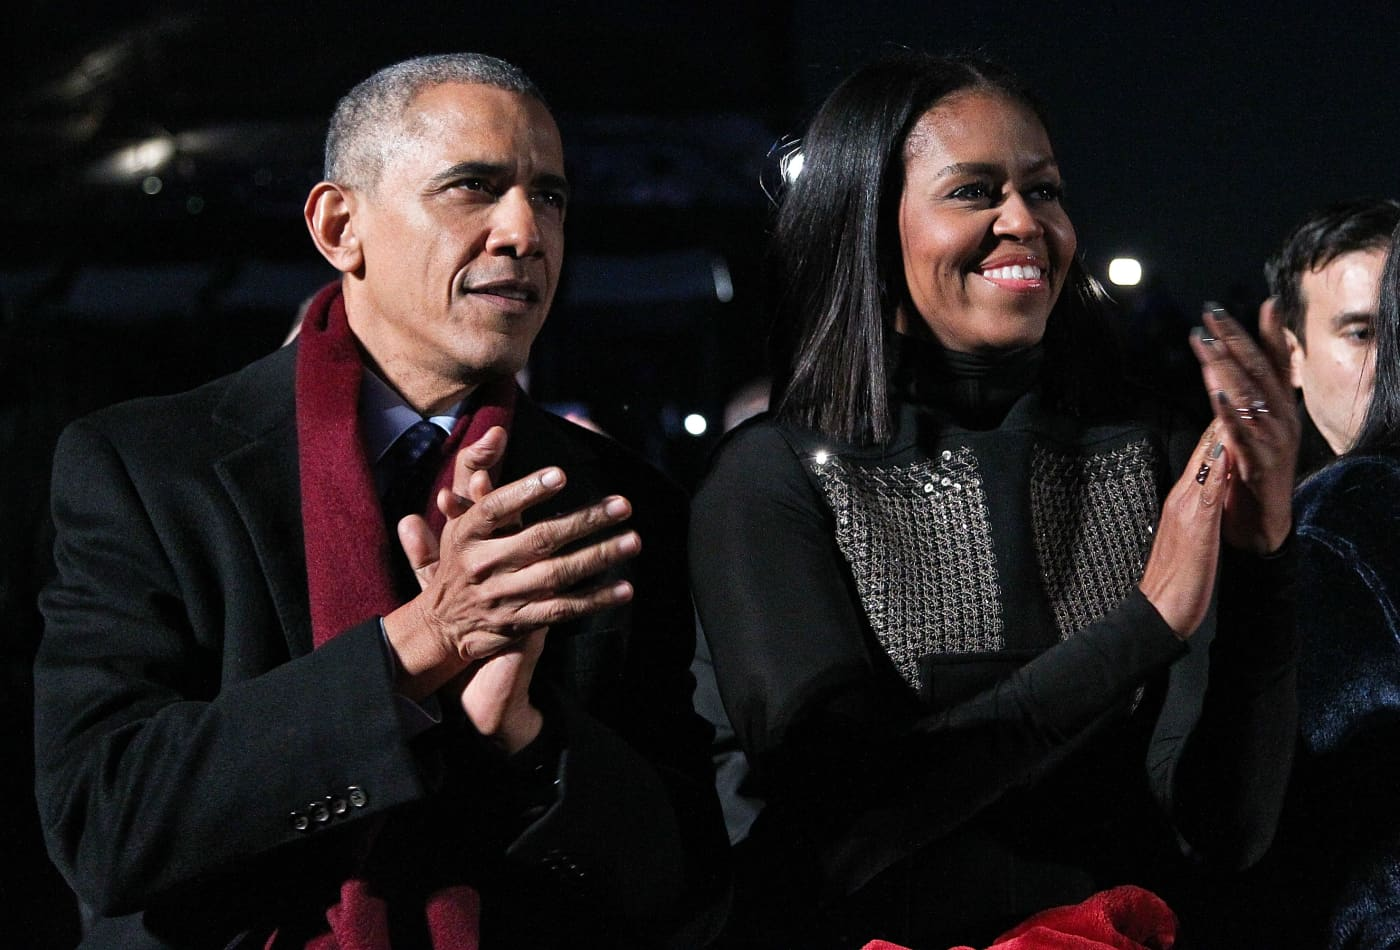 Barack and Michelle Obama-produced Netflix documentary 'American Factory' clinches Oscar nod